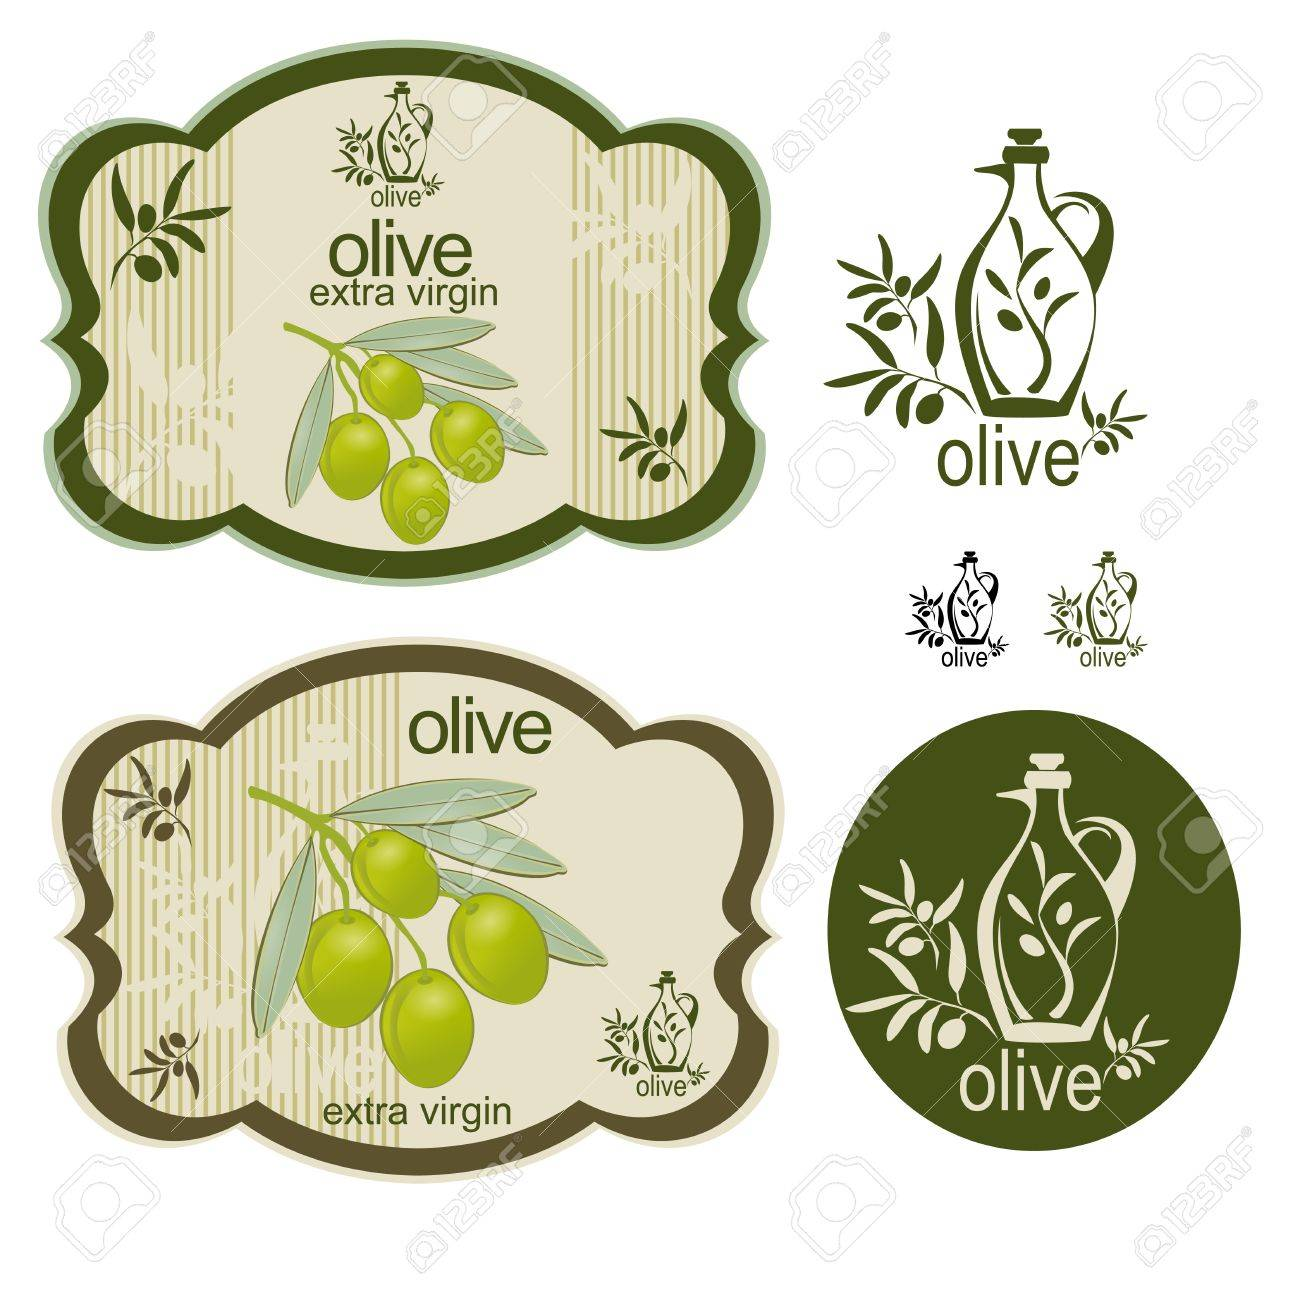 A set off vintage olive products labels and an interesting logo. Stock Vector - 14026644